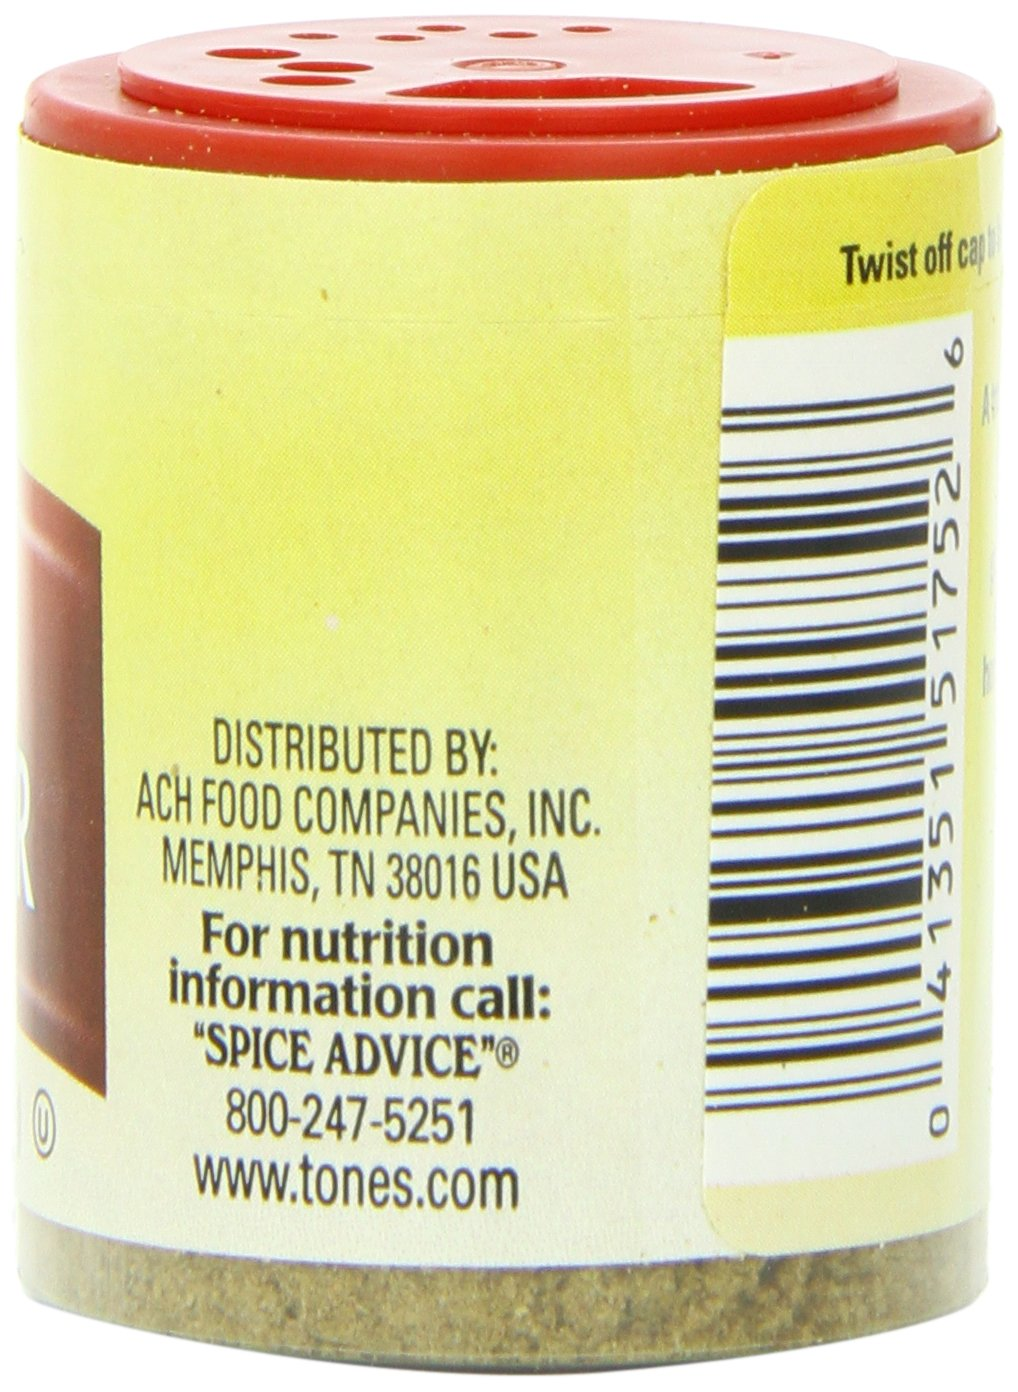 Tone's Mini's Coriander, Ground, 0.50 Ounce (Pack of 6) by Tone's (Image #3)